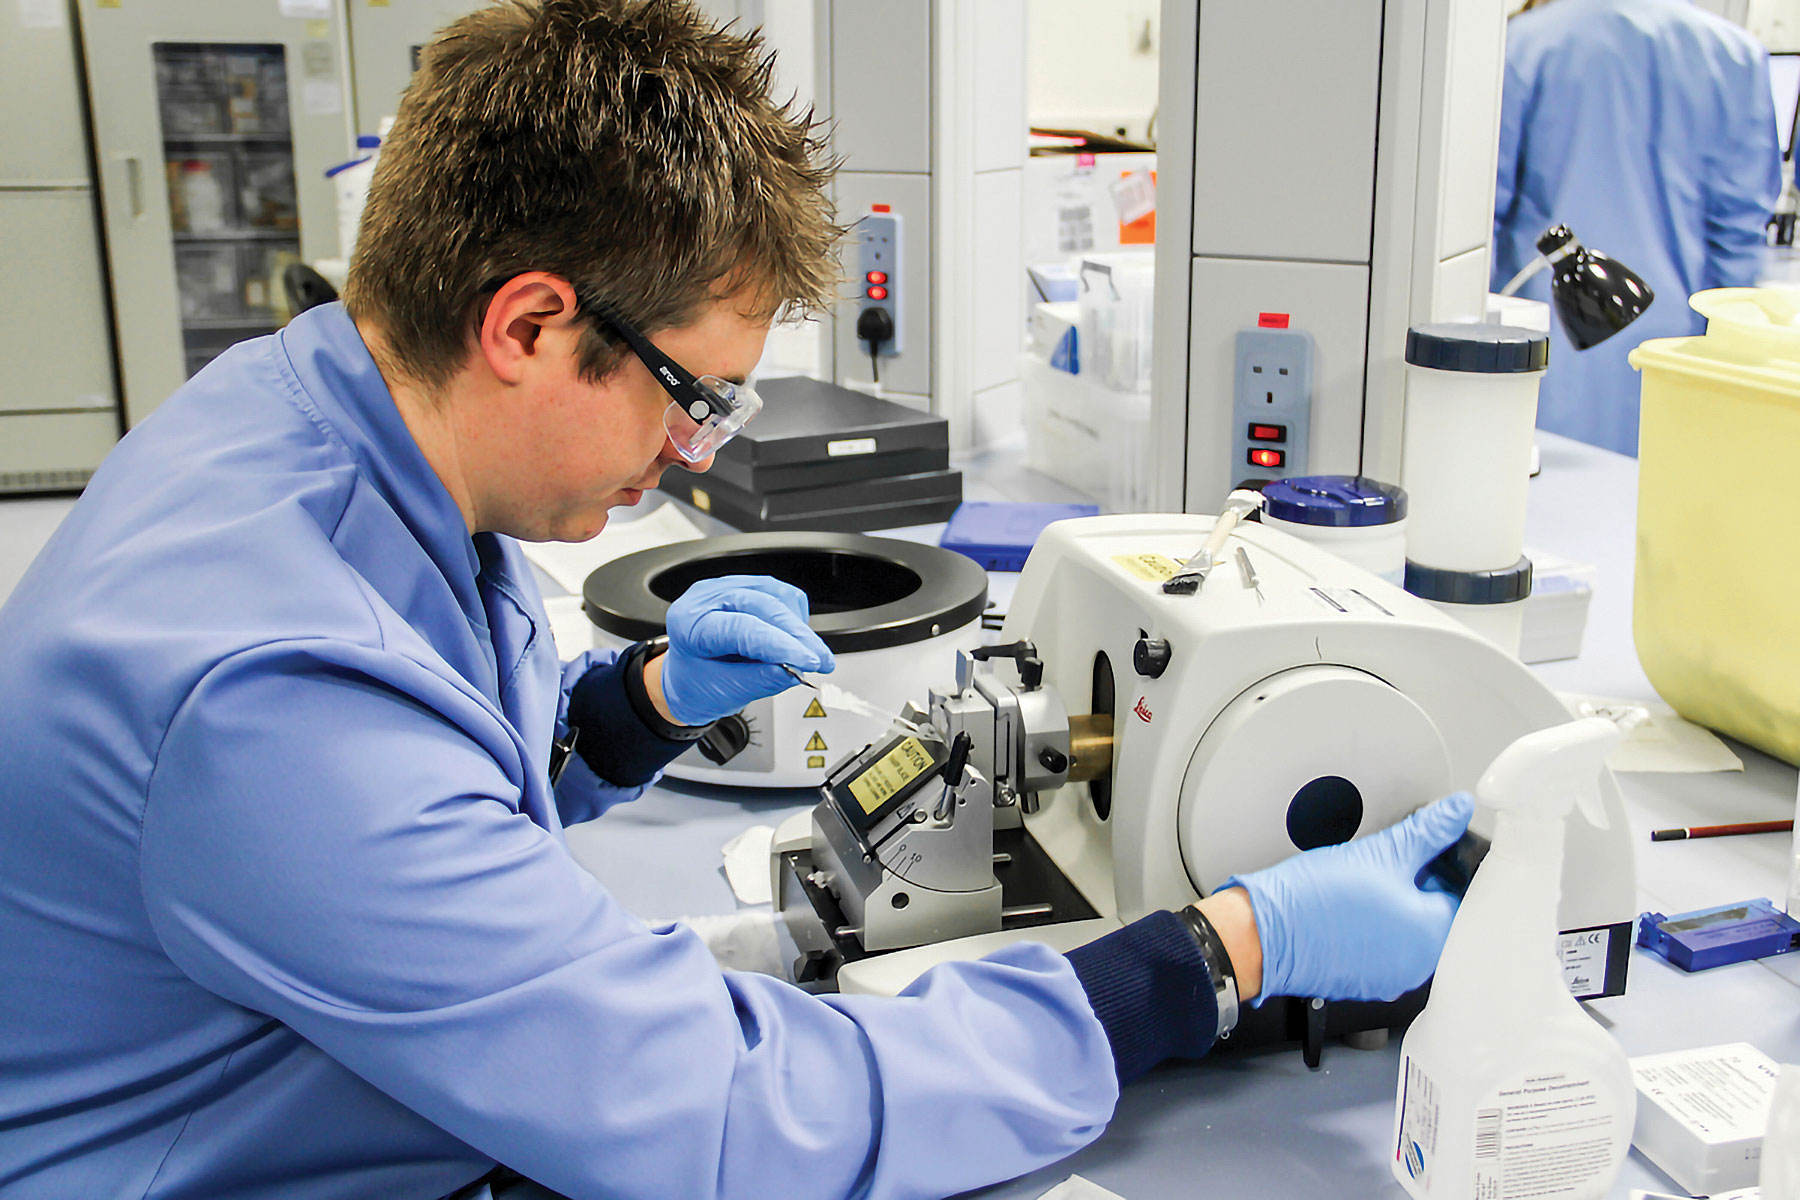 Outsourcing Drives Growth at Almac Diagnostics